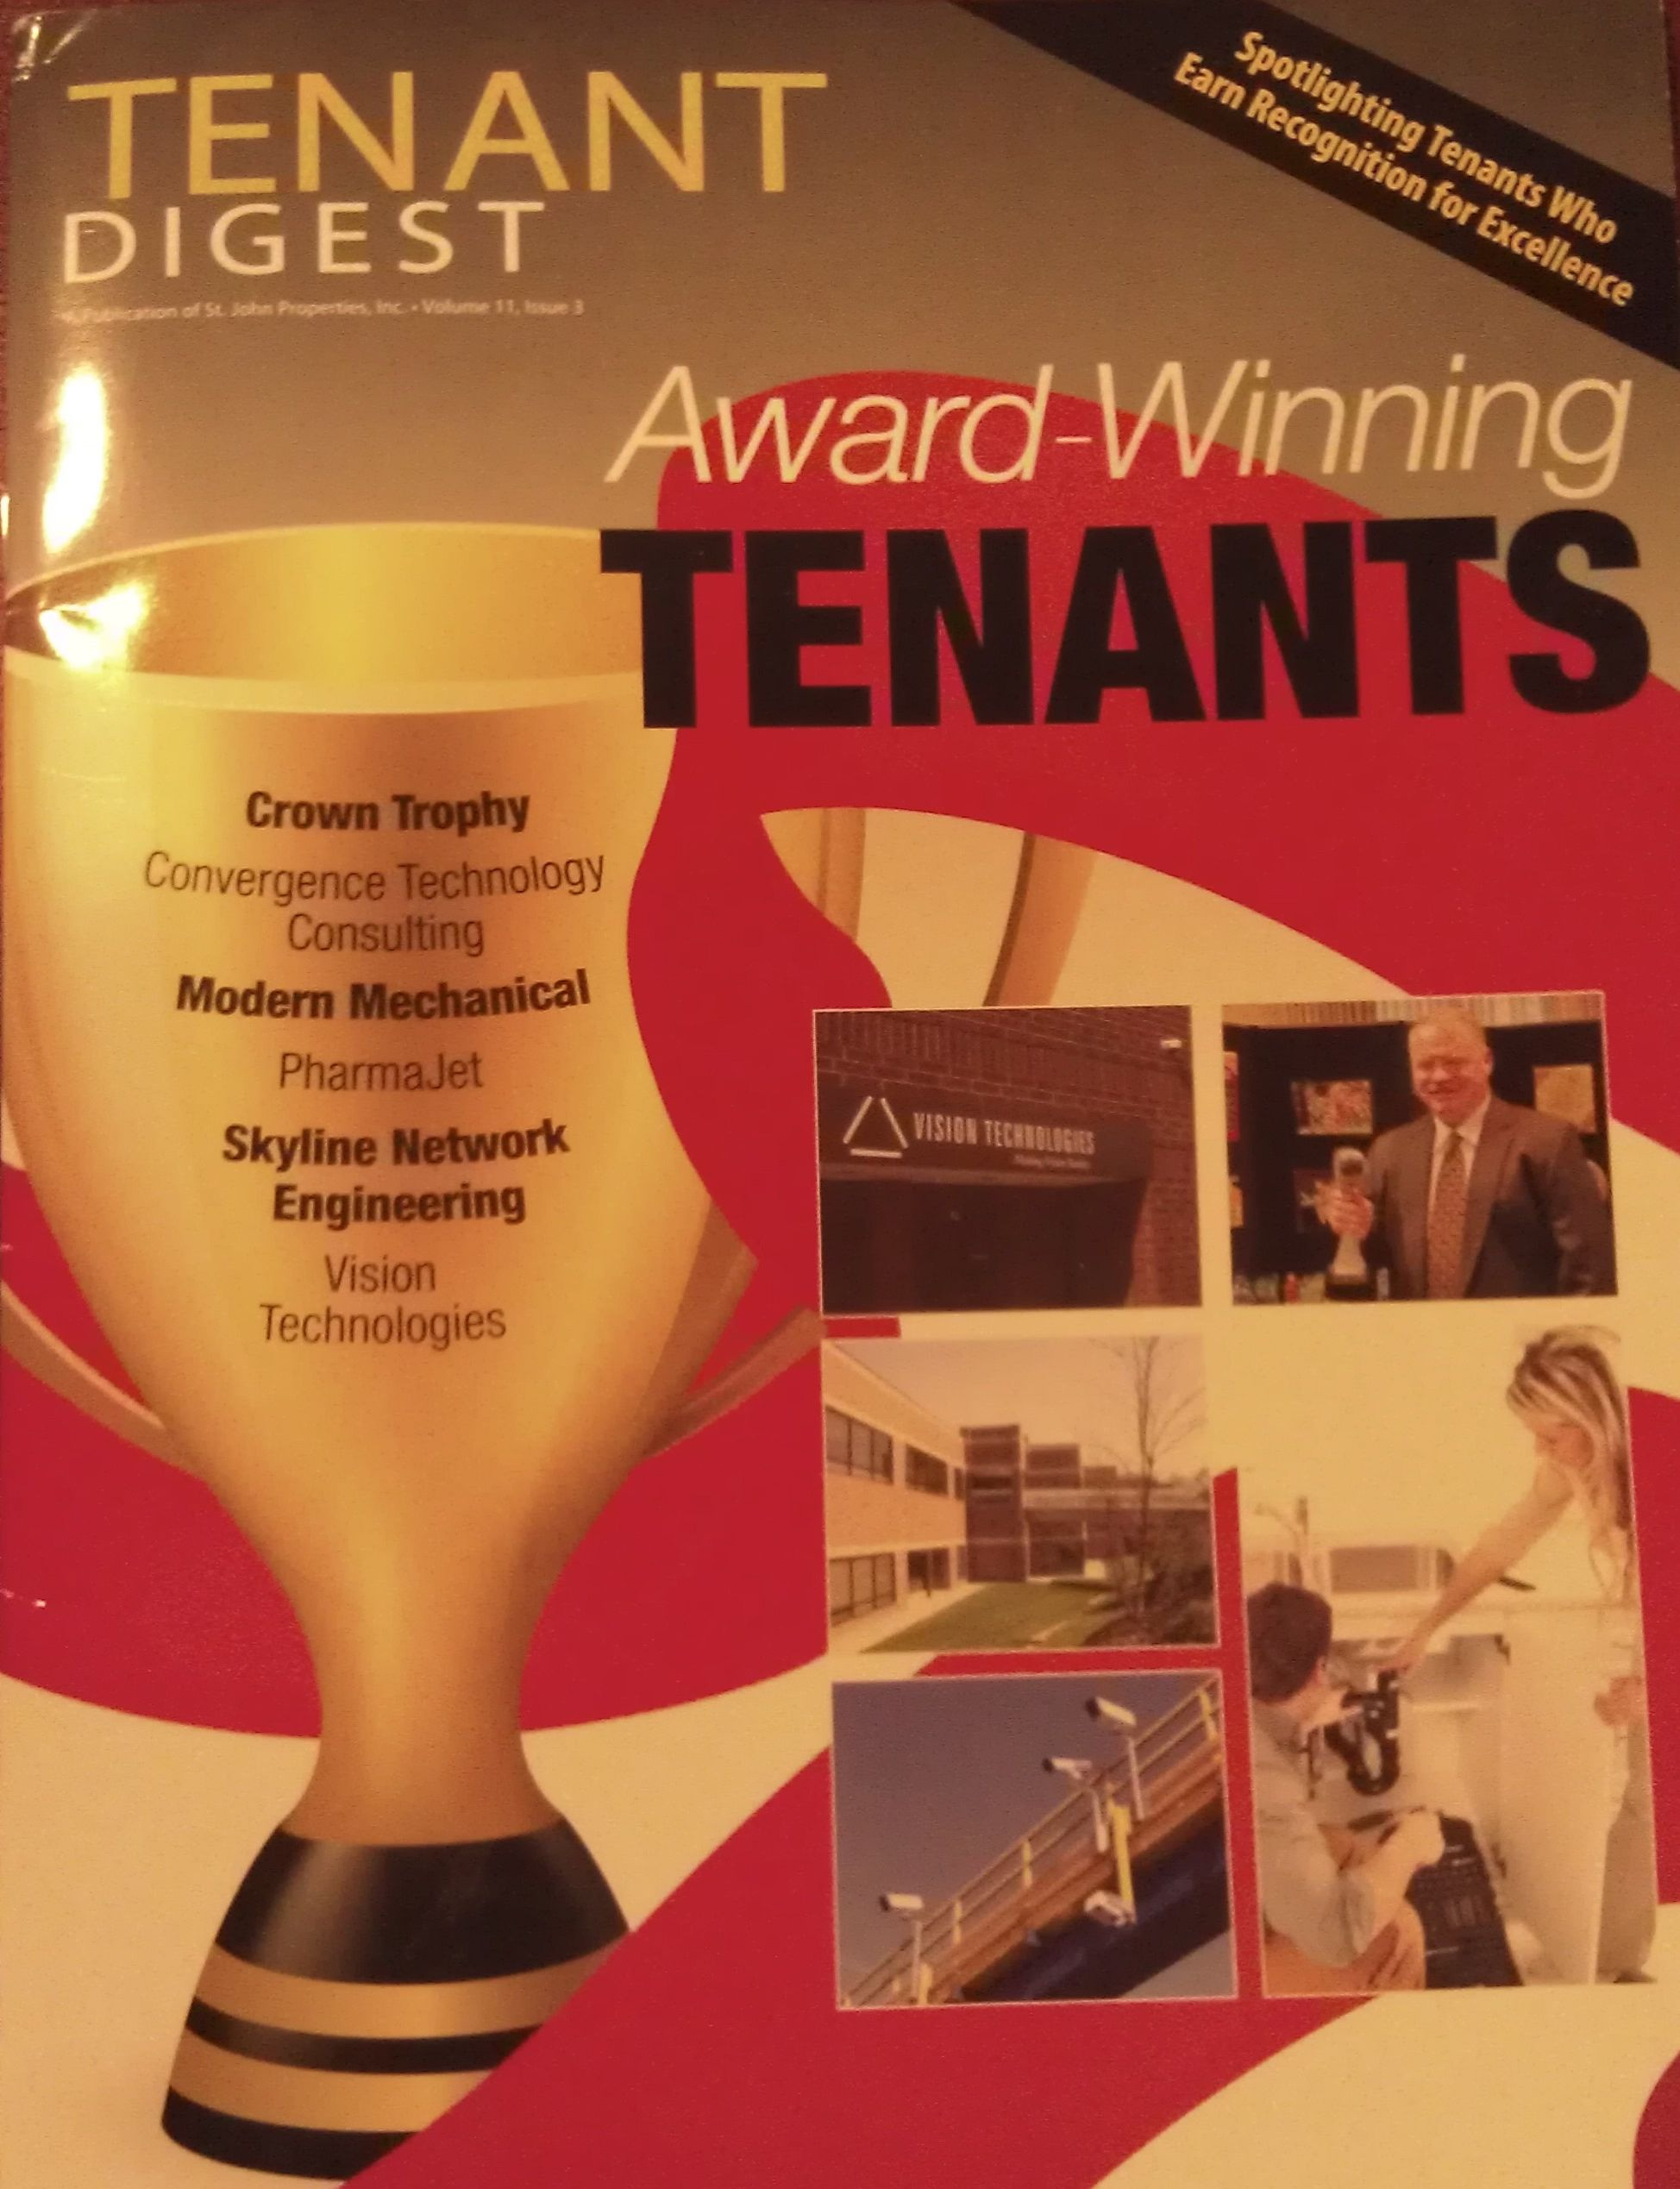 St John Properties Featured Crown Trophy On Page 15 Of Tenant Digest I Can T Think Of Another Landlord That G Being A Landlord Technology Consulting Success